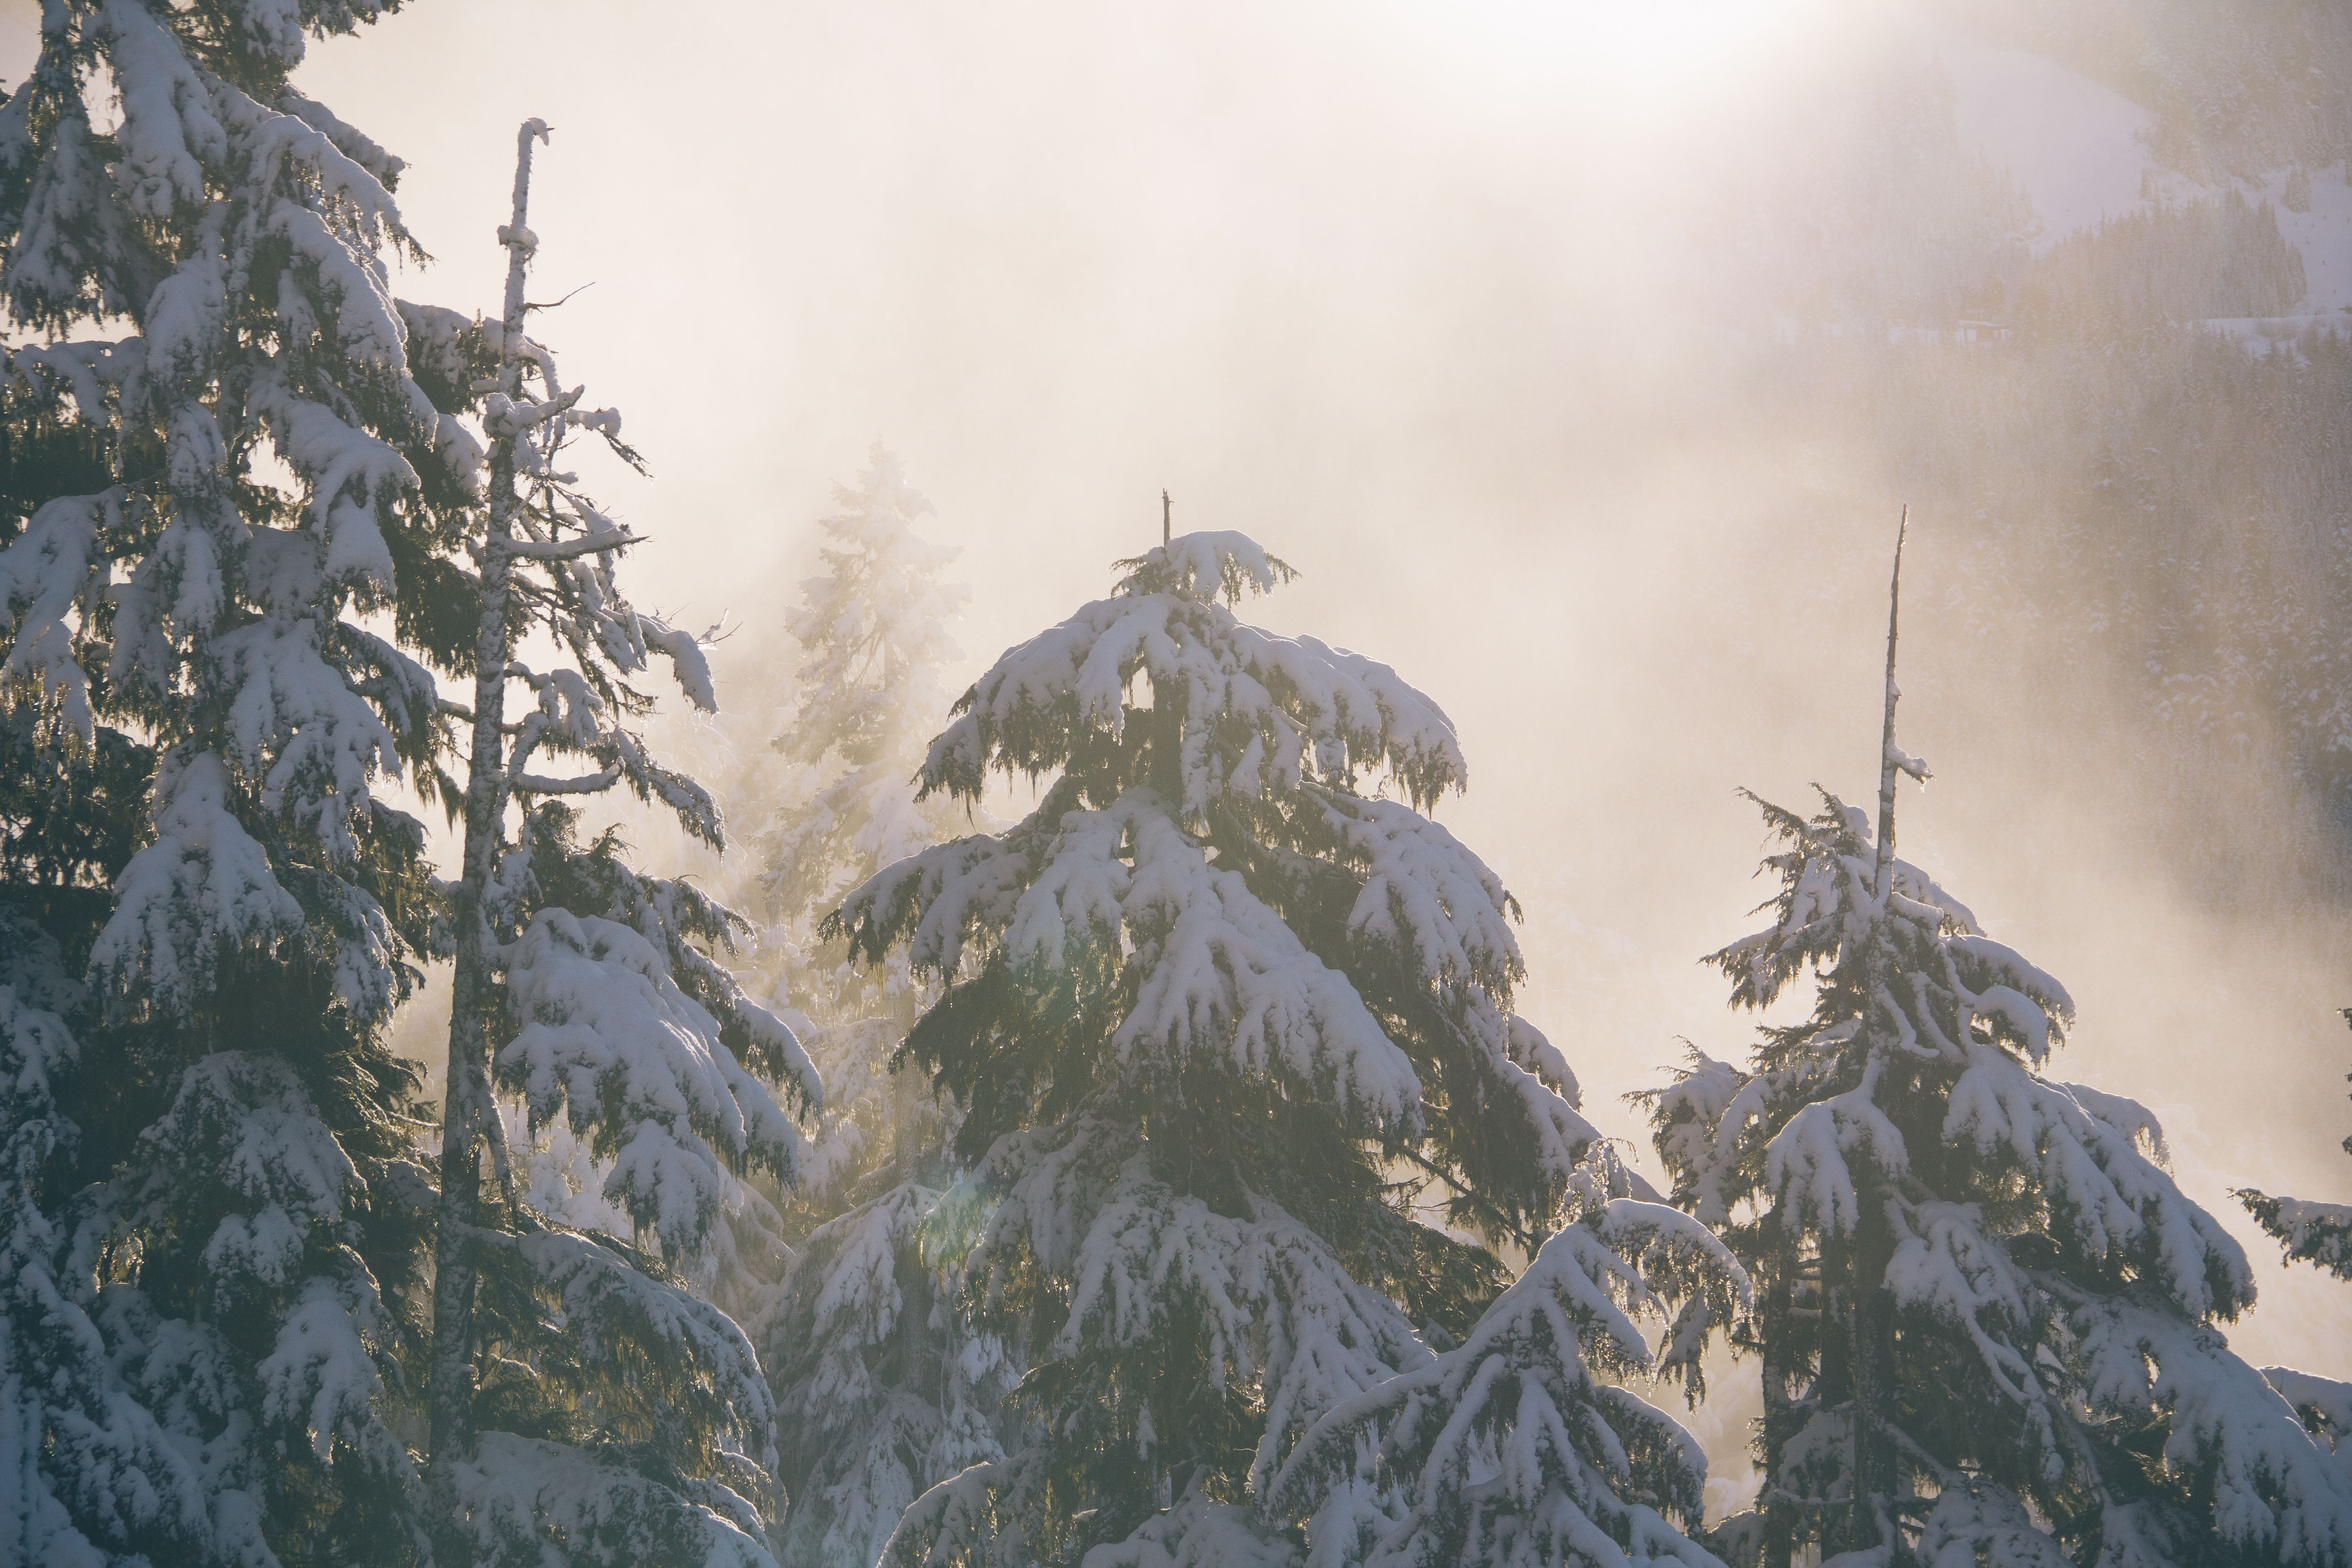 Snow. Winter. Trees. Mountains. Mist. Sunlight.  No Credit Needed. UnSplash - All photos published on Unsplash are licensed under Creative Commons Zero which means you can can copy, modify, distribute and use the photos, even for commercial purposes, all without asking permission.  The presentation and collection of these images is copyrighted by Crew Labs Inc. (2014).